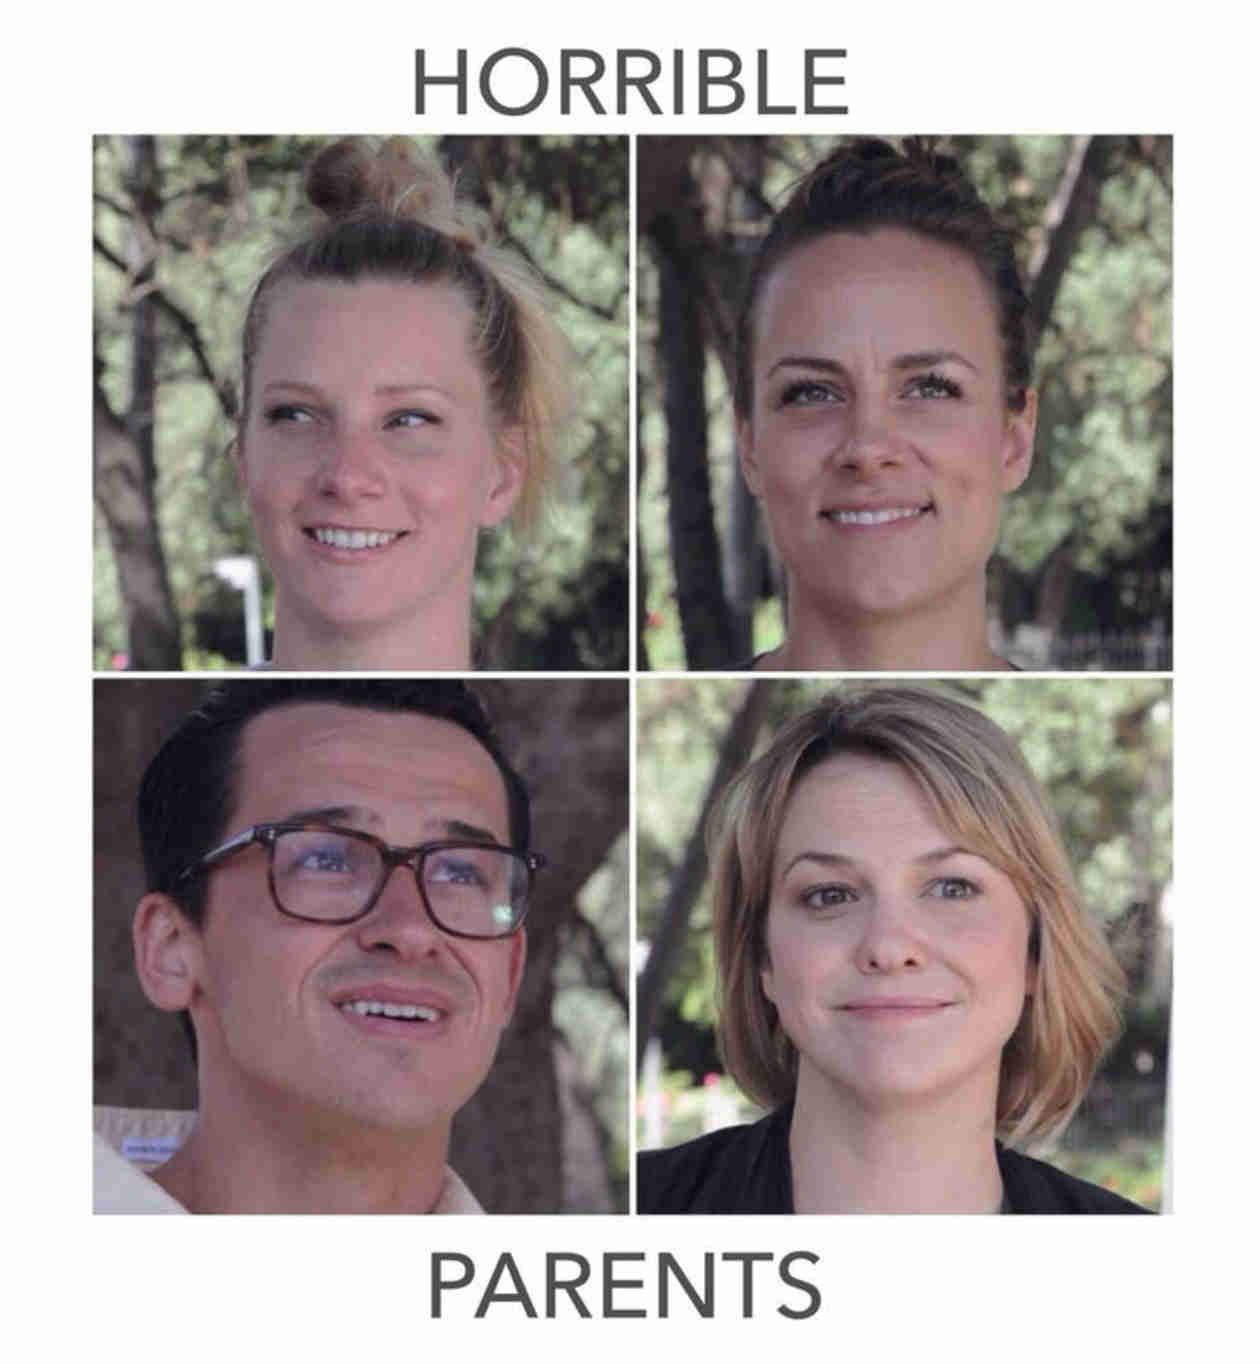 Watch Heather Morris in the Horrible Parents Trailer (VIDEO)